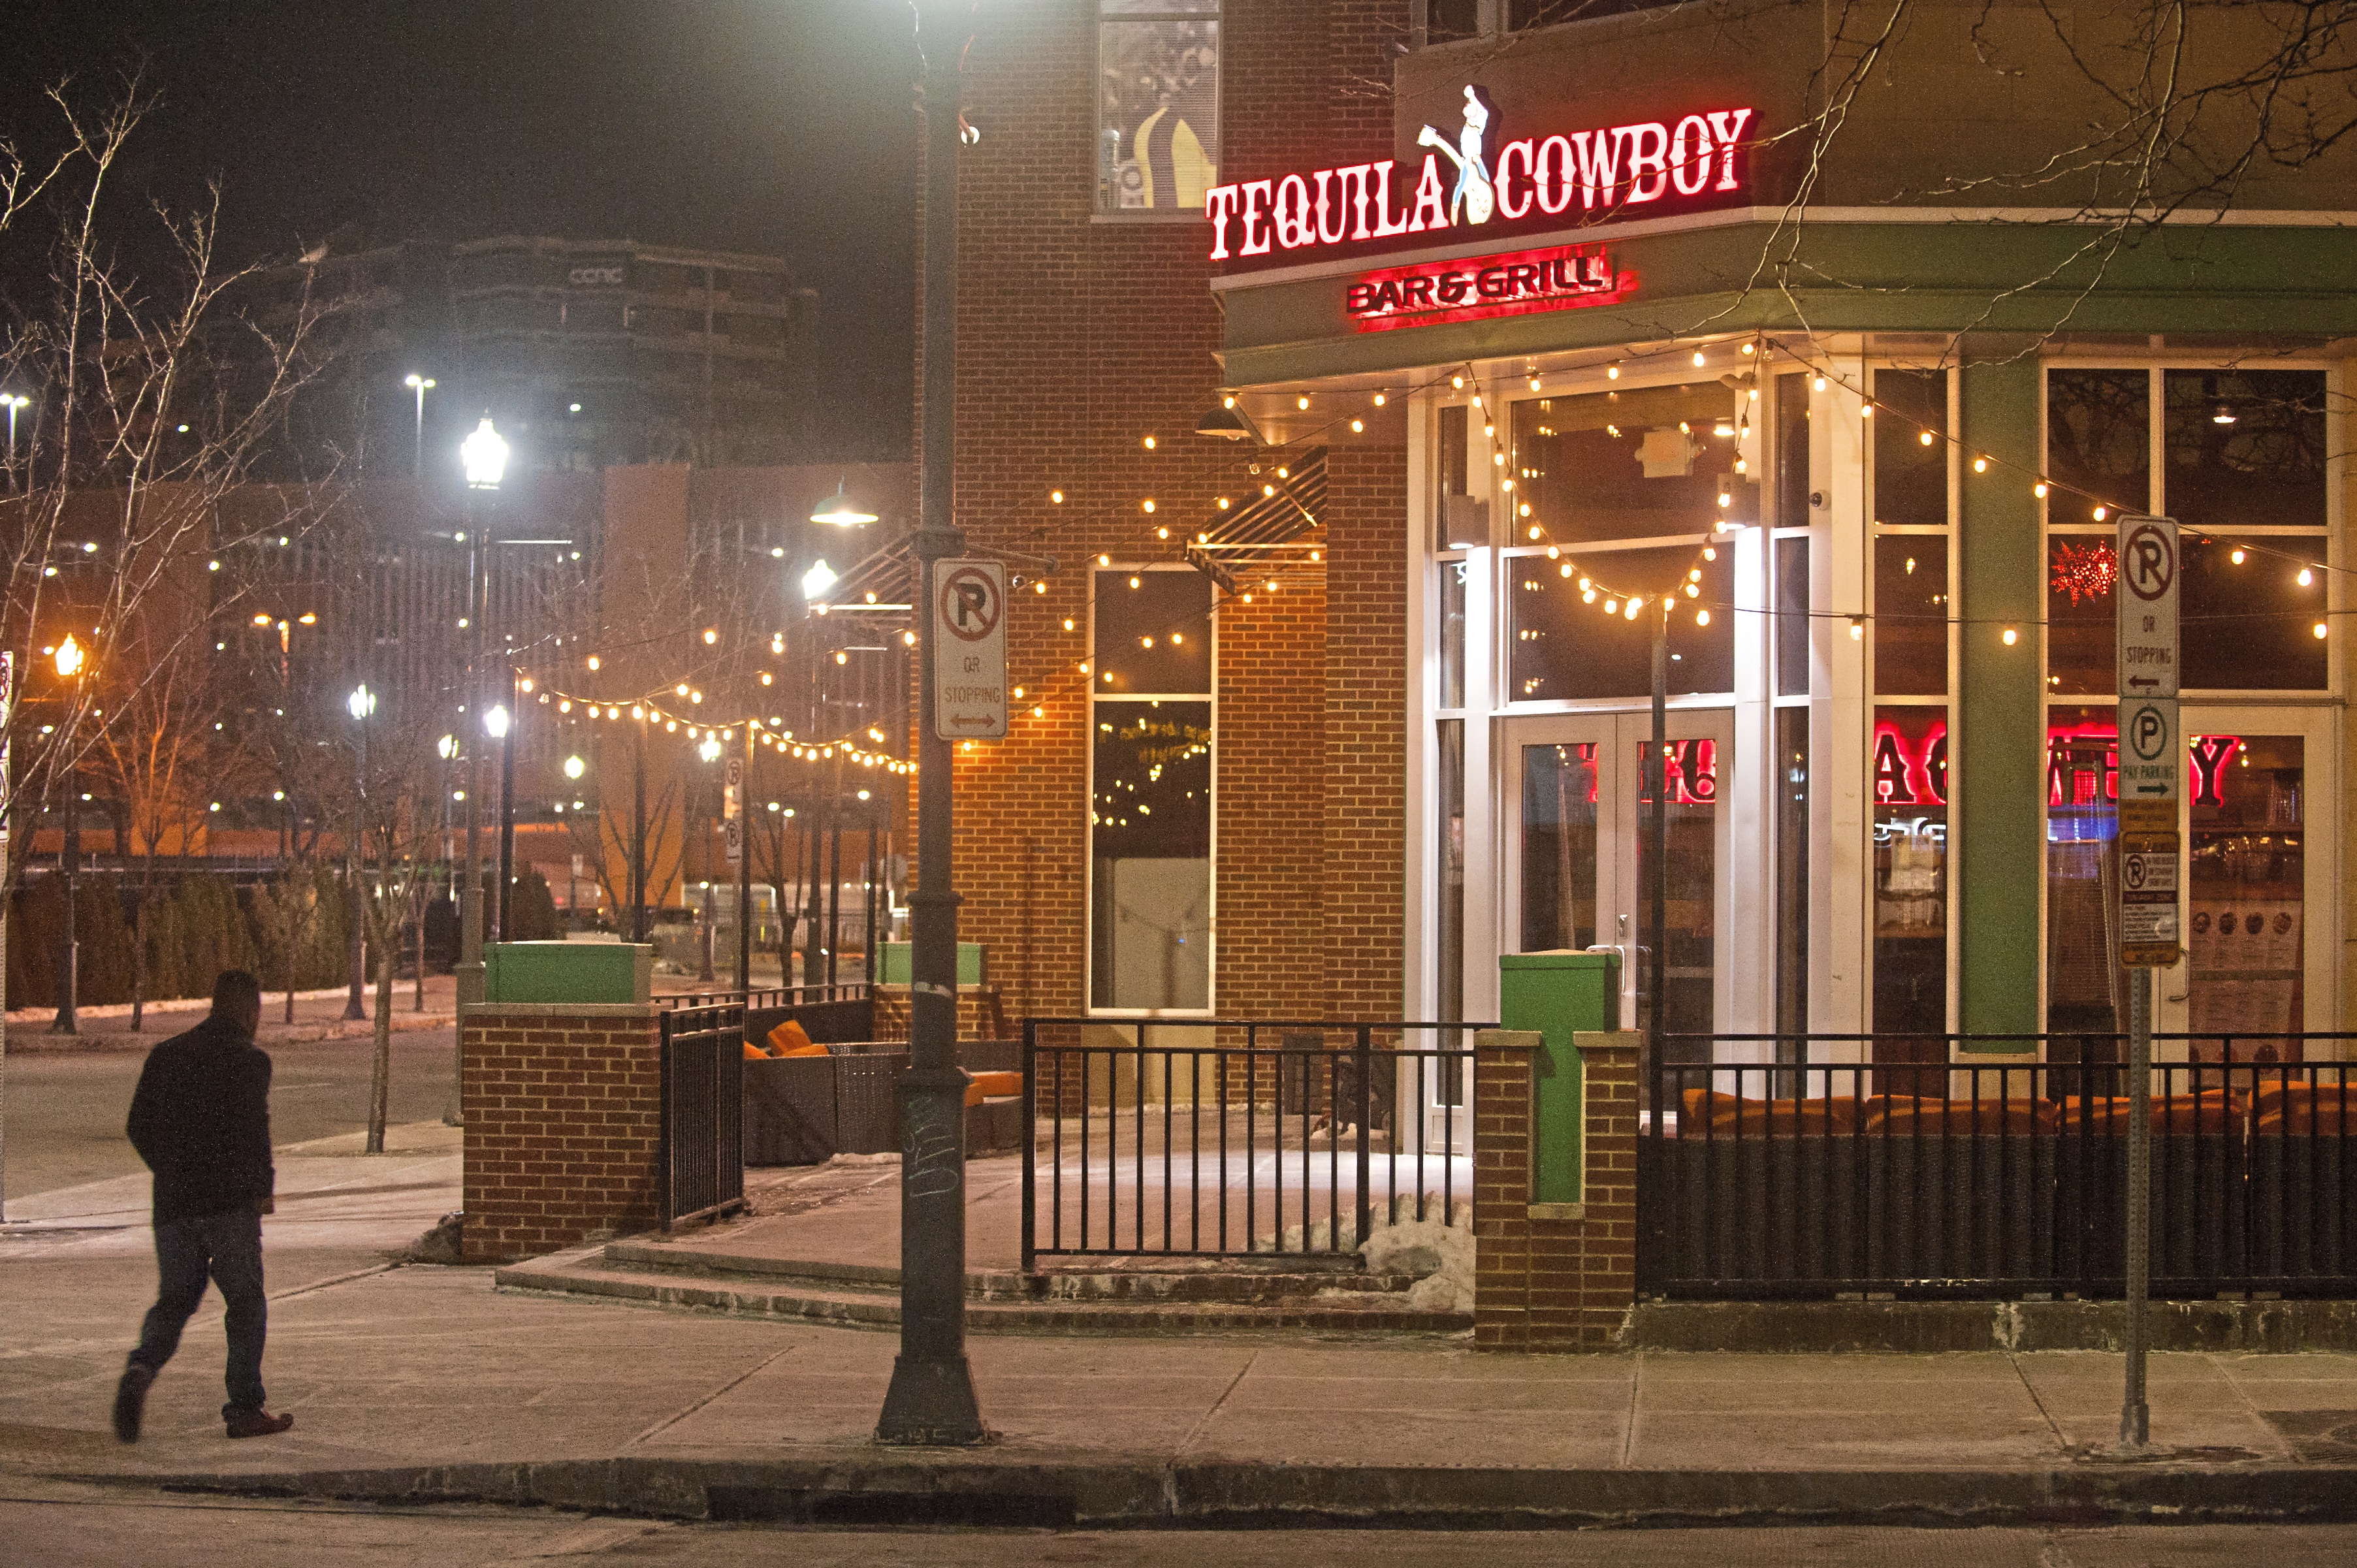 """20180107smsTequila01 Lights shine at the entryway for Tequila Cowboy on Sunday, Jan. 7, 2018 along the North Shore by Heinz Field. On New Years Eve, Steelers offensive coordinator Todd Haley injured his hip and was escorted out of the bar after his wife Christine Haley was in a """"minor scuffle"""" at the establishment. (Stephanie Strasburg/Post-Gazette)"""